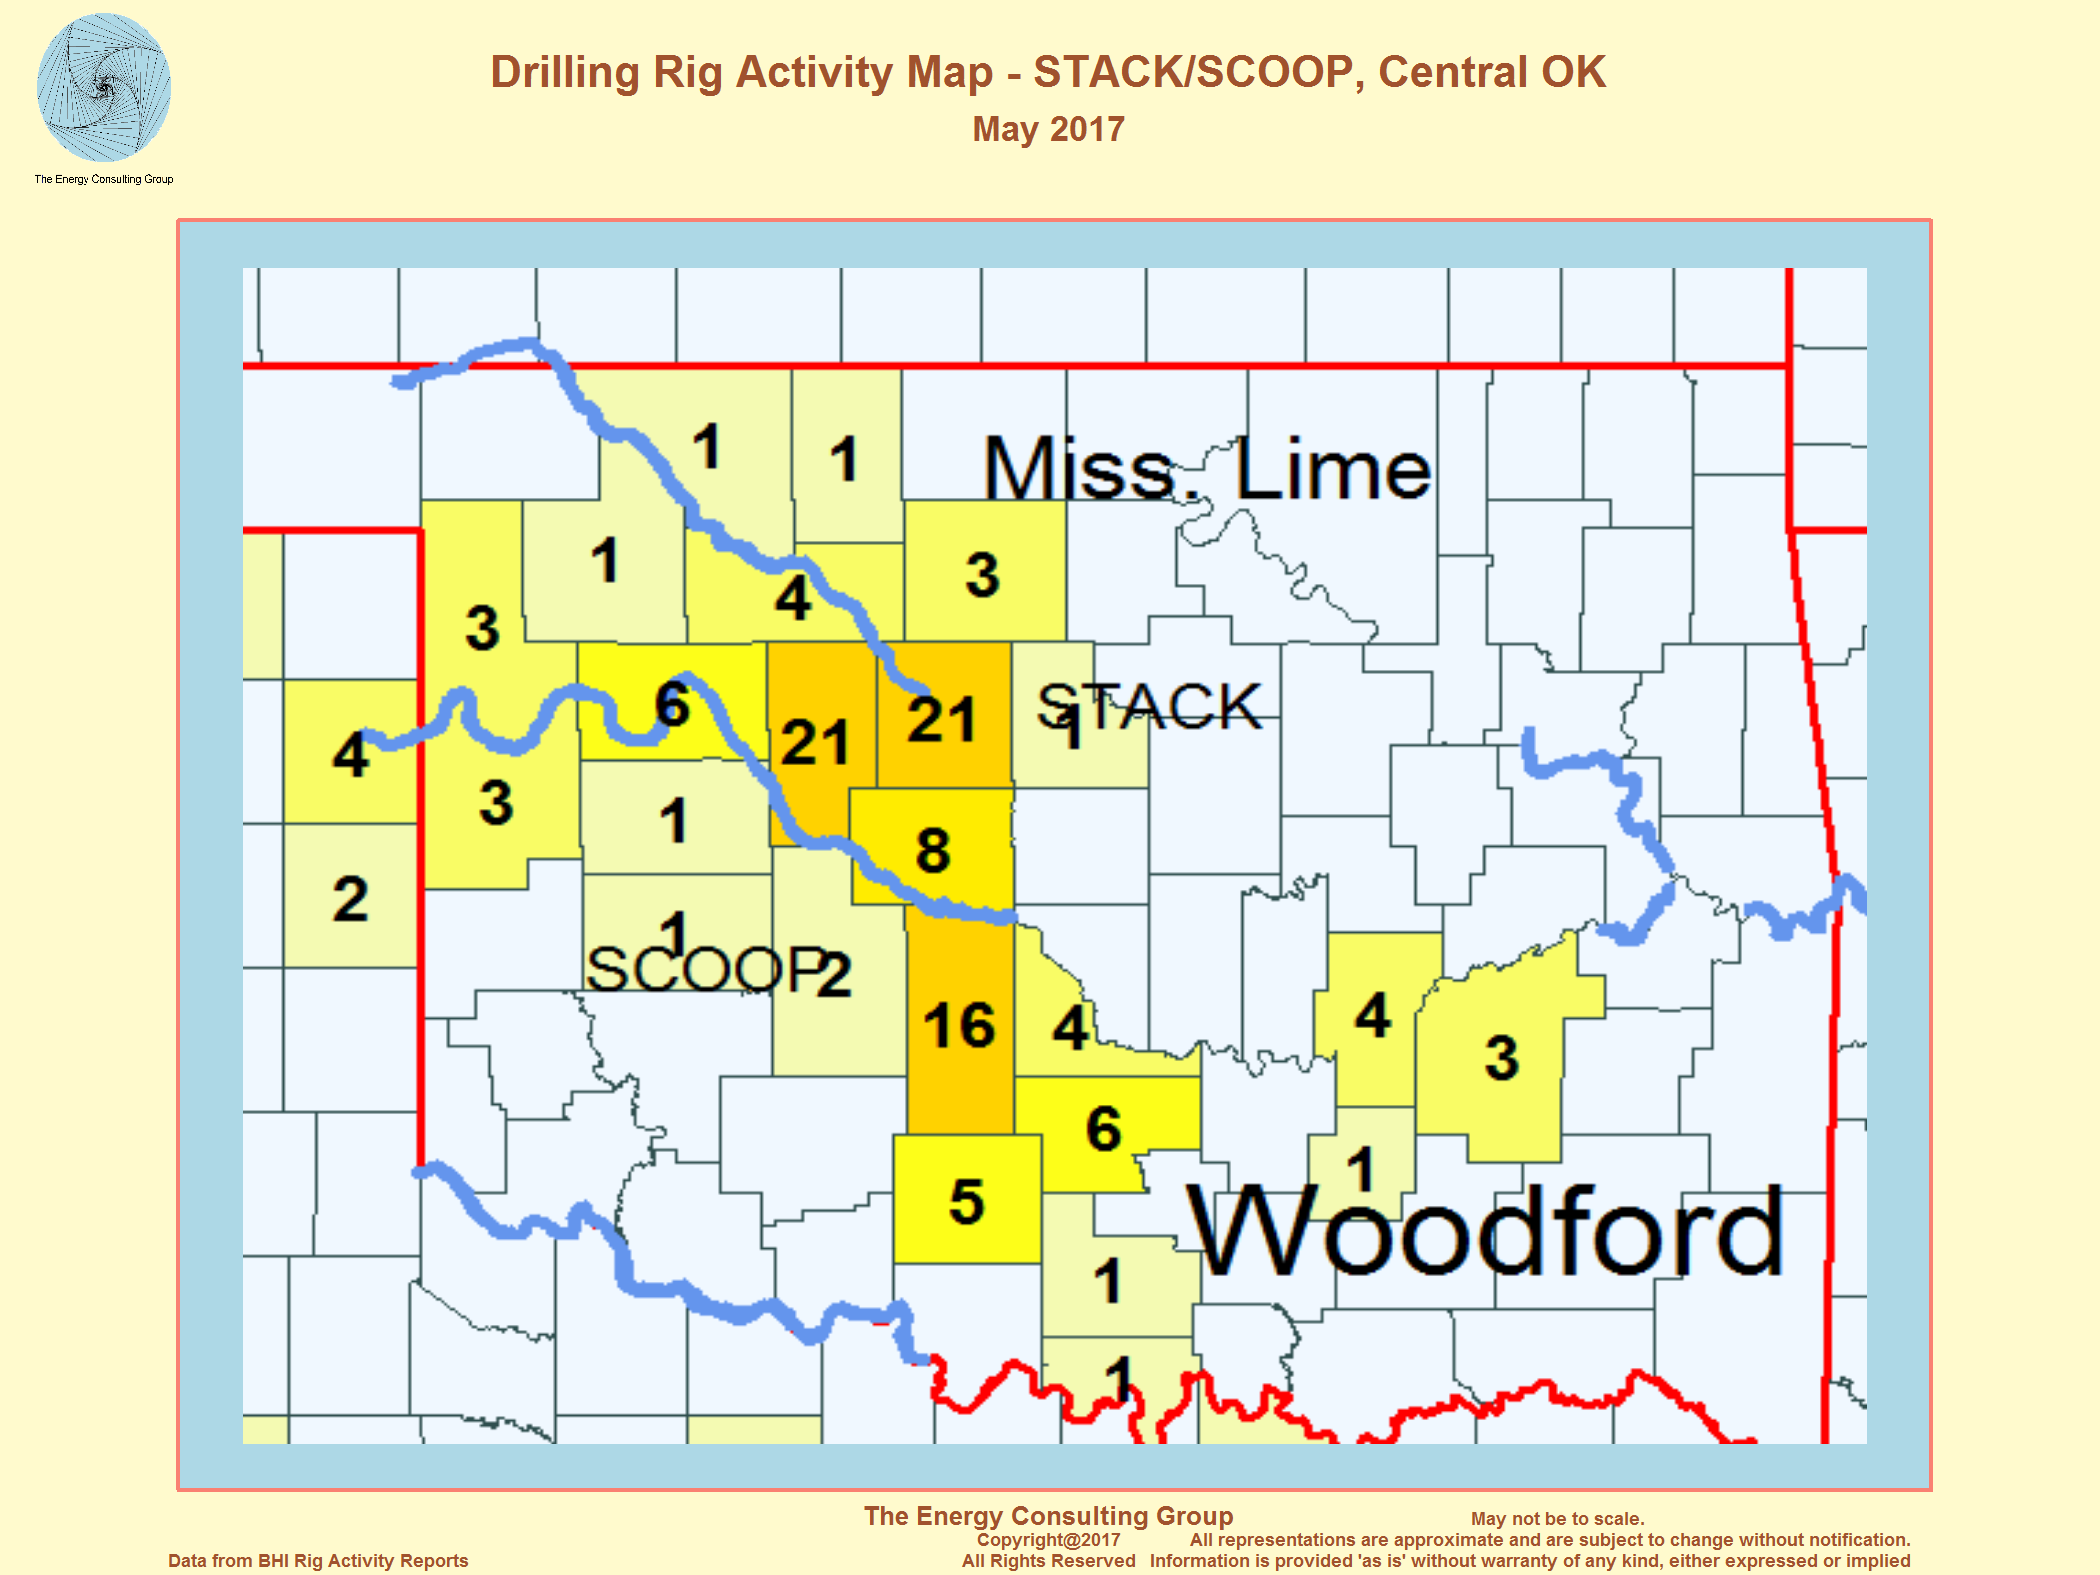 Us Drilling Rig Activity Map Stack Scoop Central Oklahoma May 2017